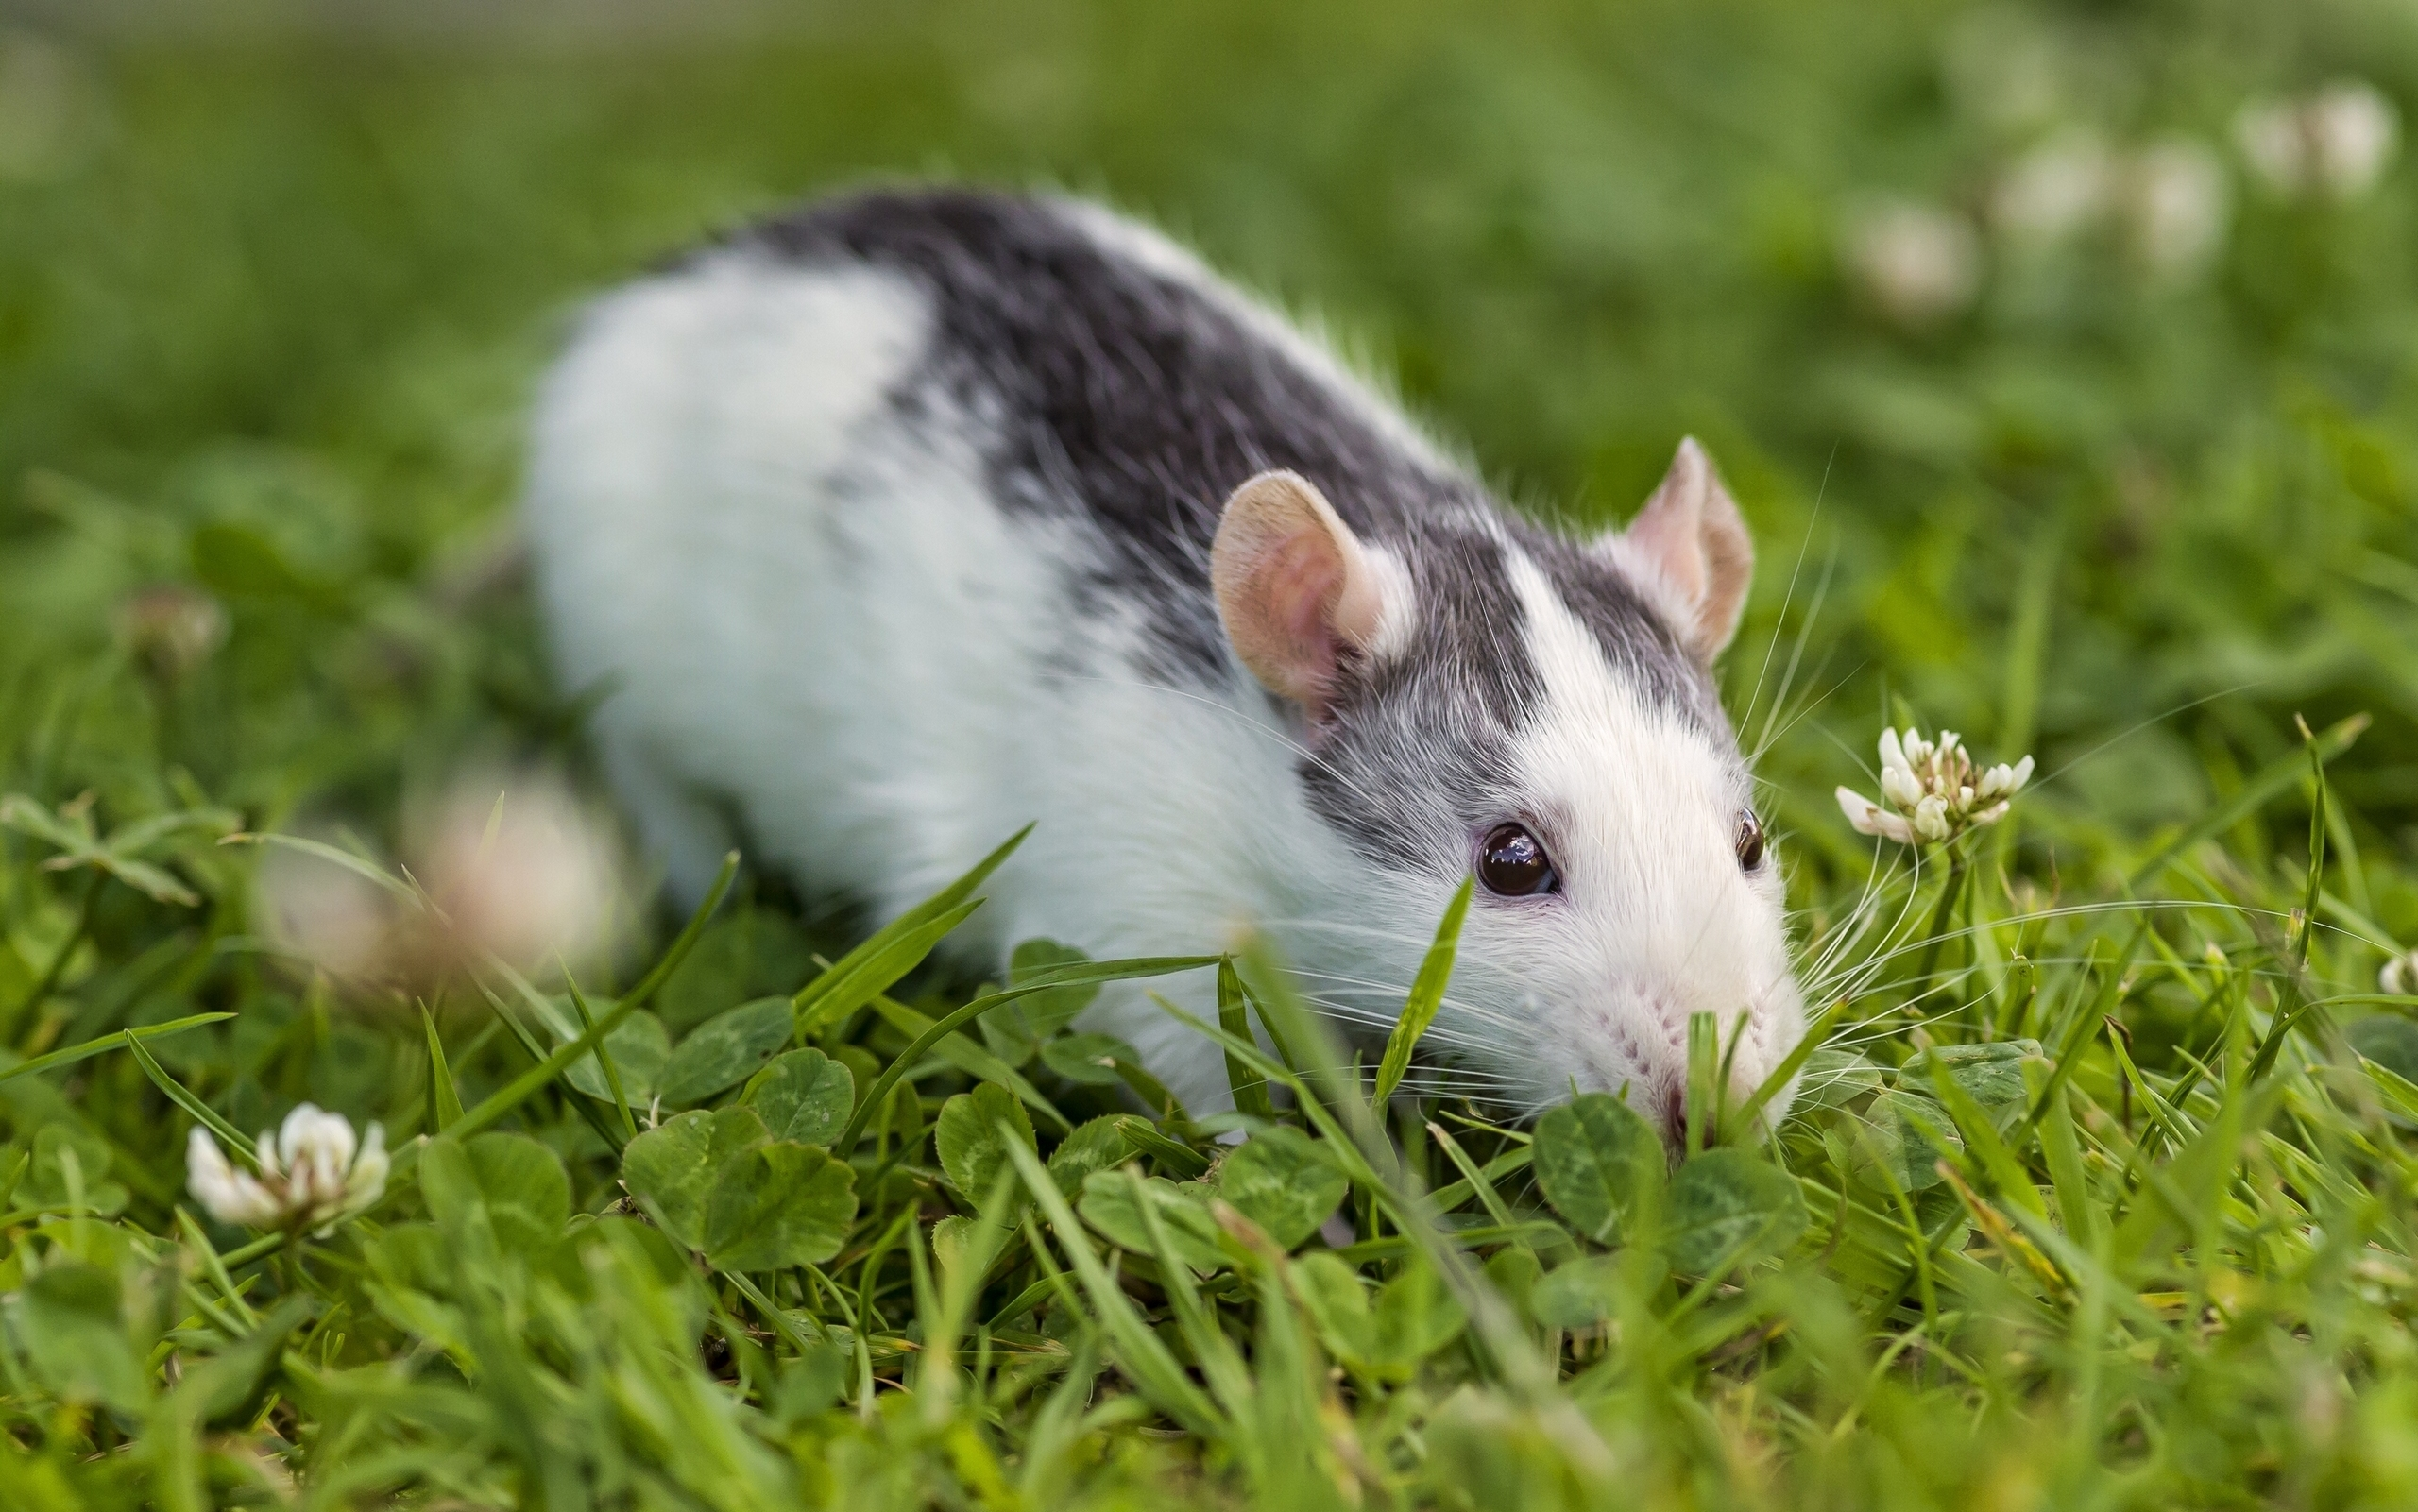 83349 download wallpaper Animals, Rat, Rodent, Eyes, Grass, Clover screensavers and pictures for free